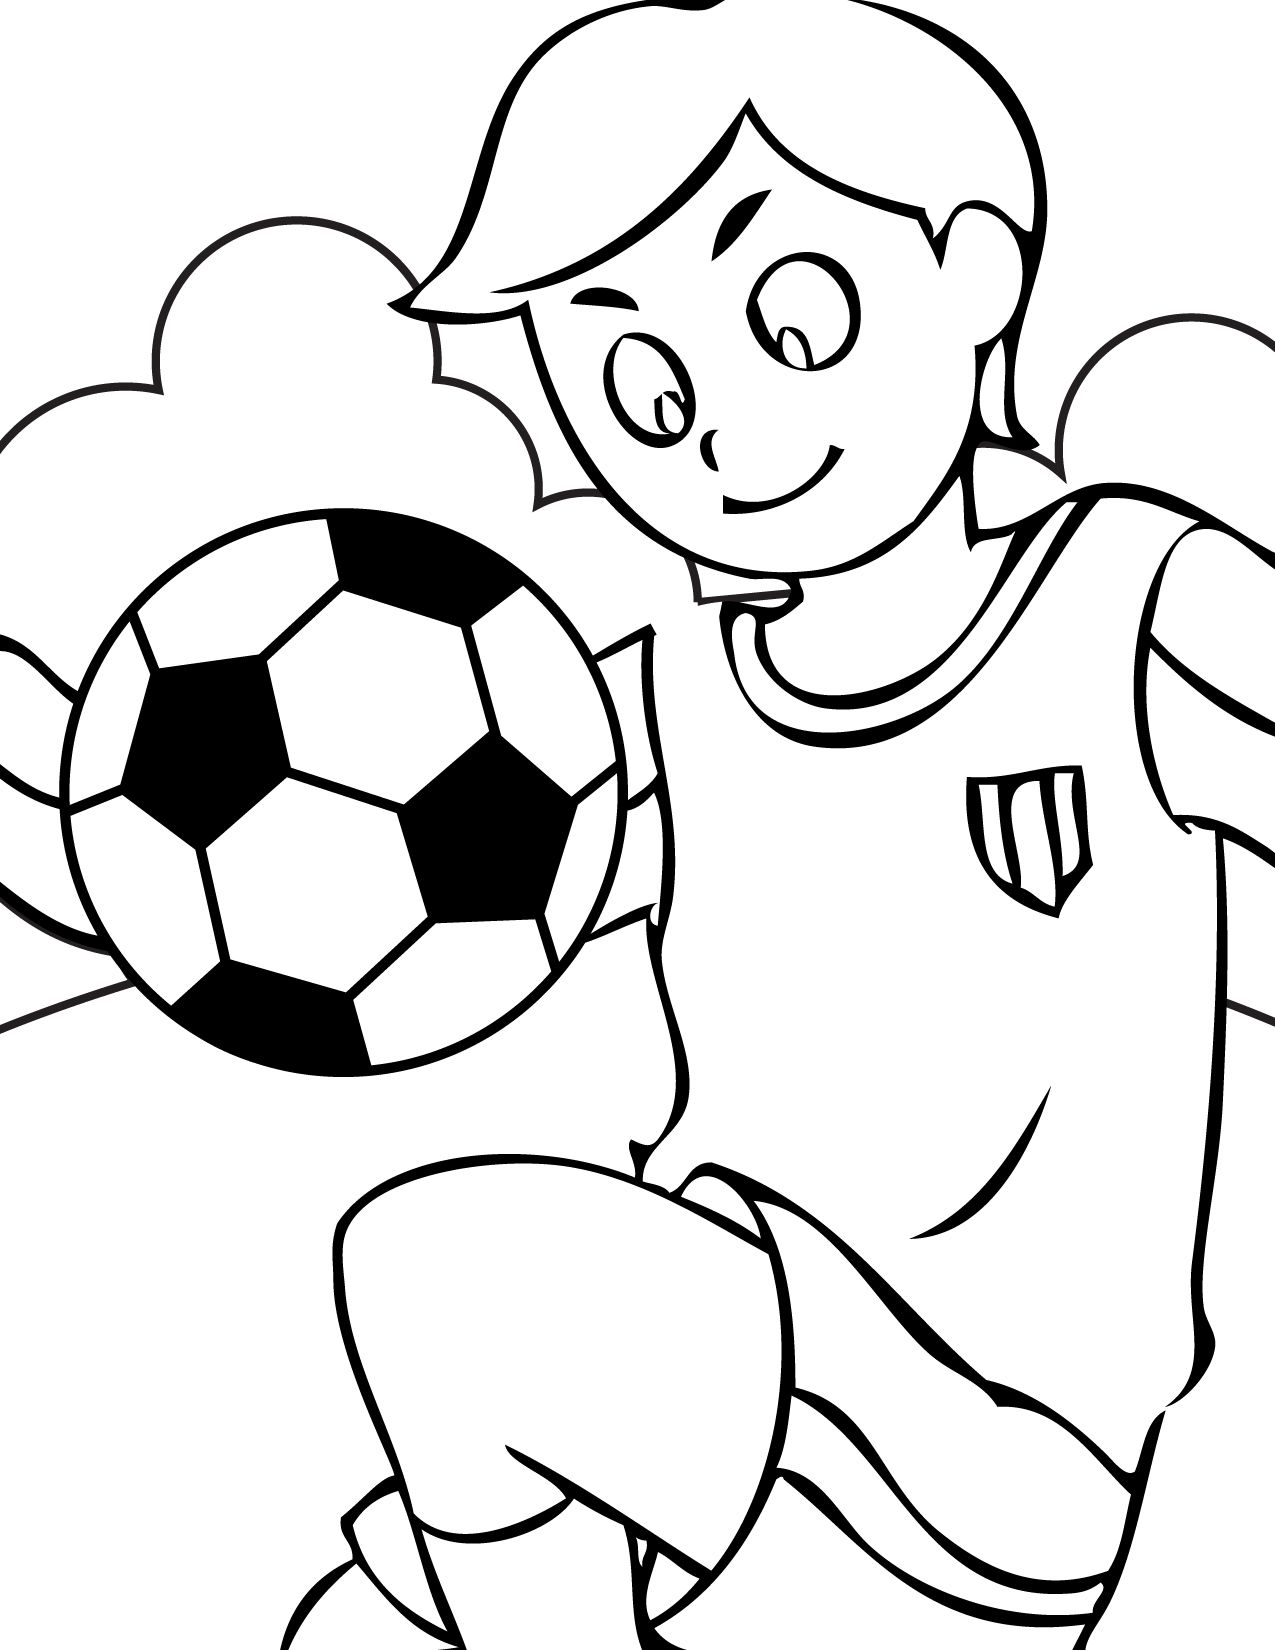 Free Printable Sports Coloring Pages For Kids | sports | Pinterest ...